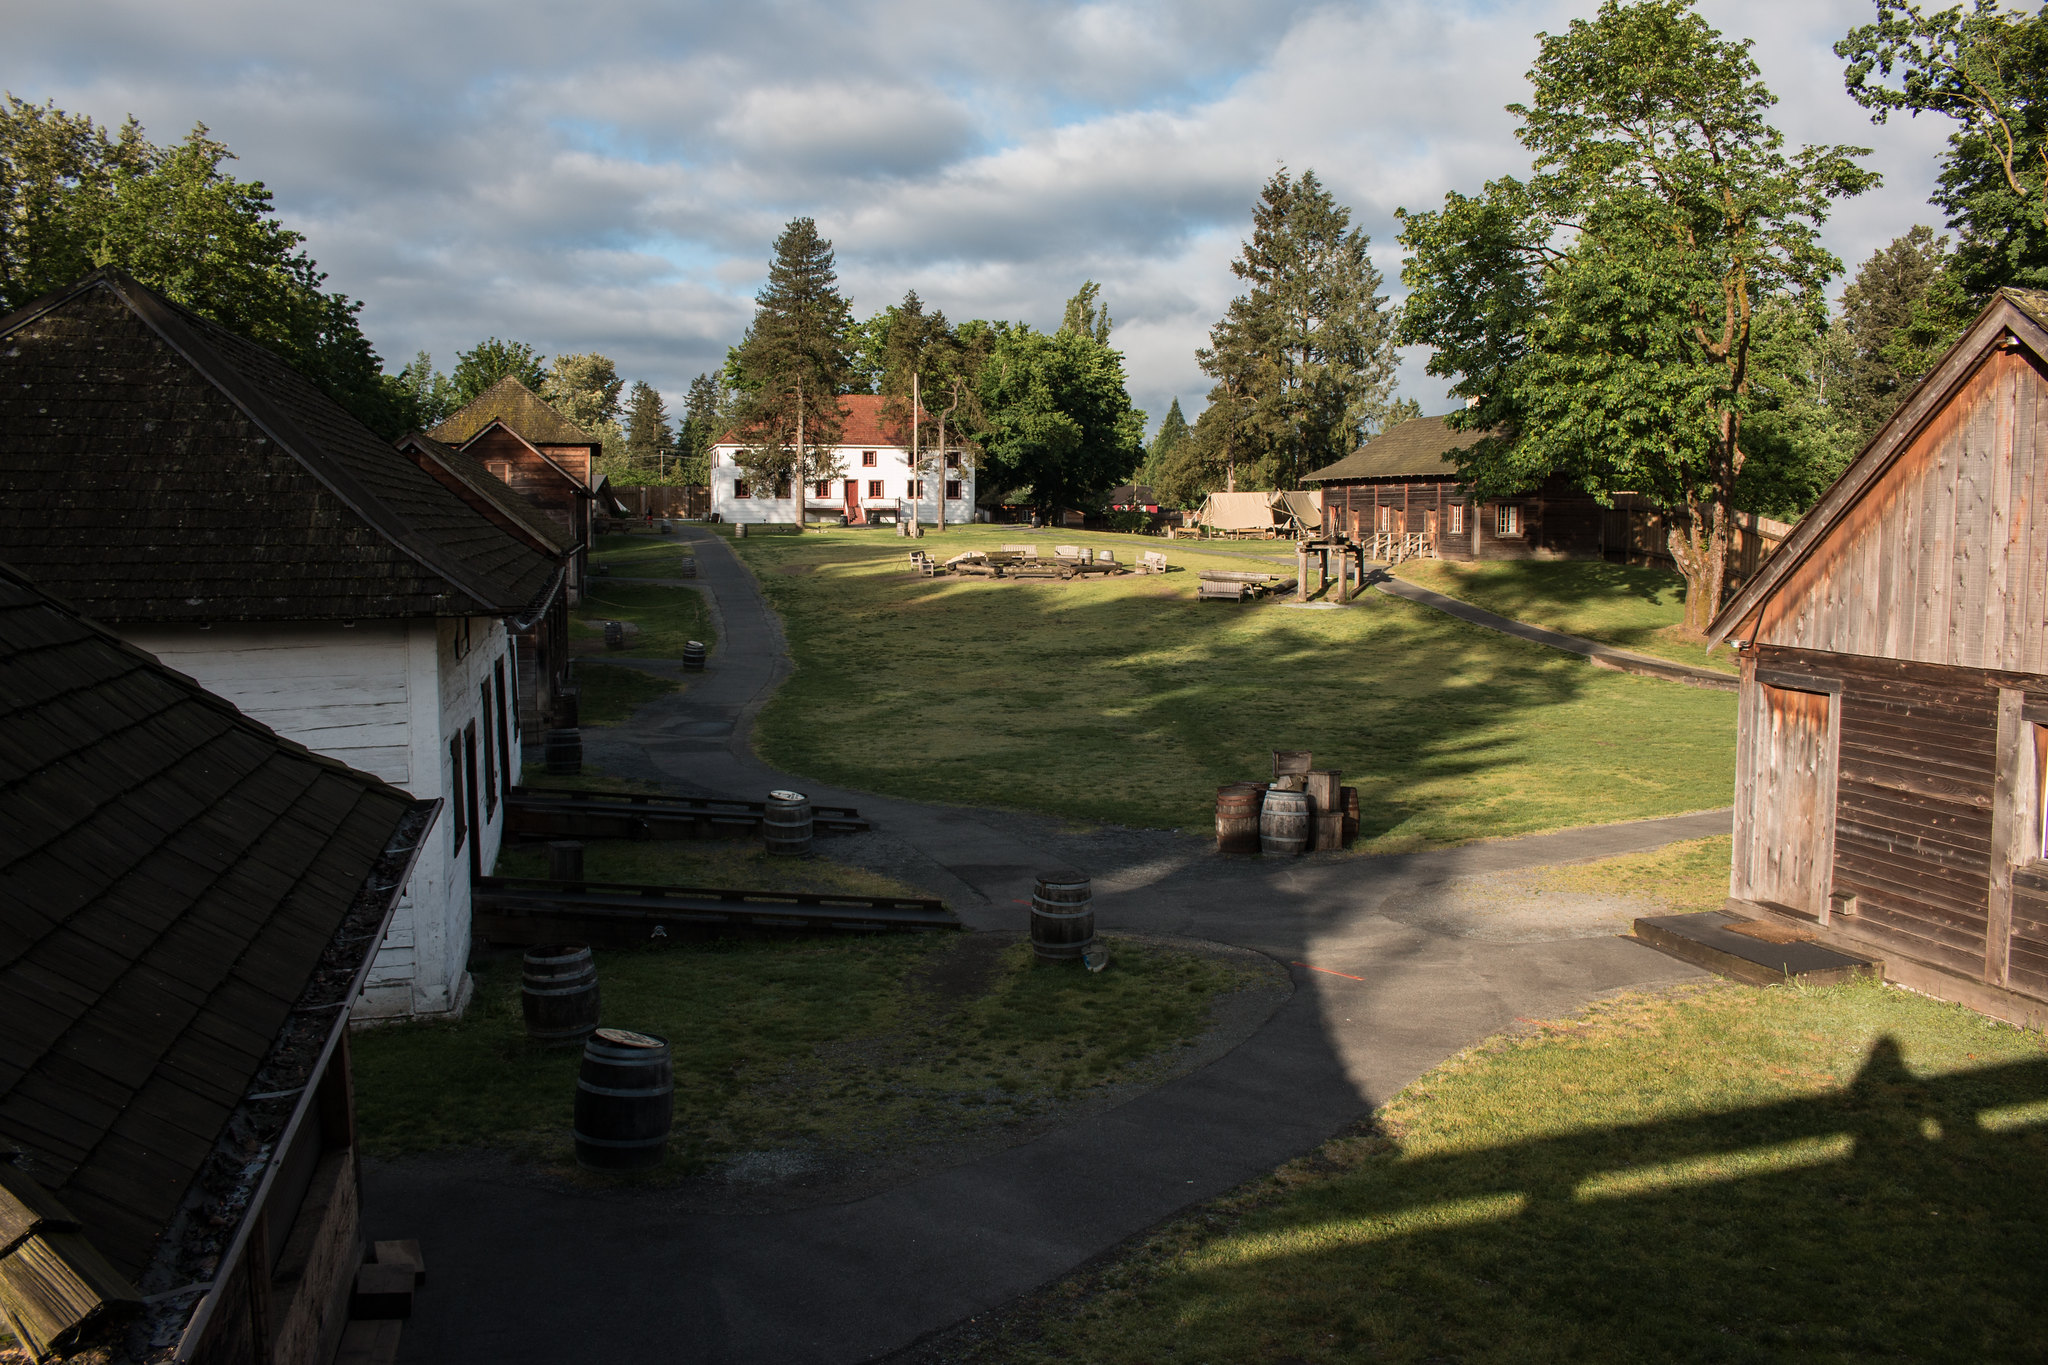 FORT LANGLEY NATIONAL HISTORICAL SITRE